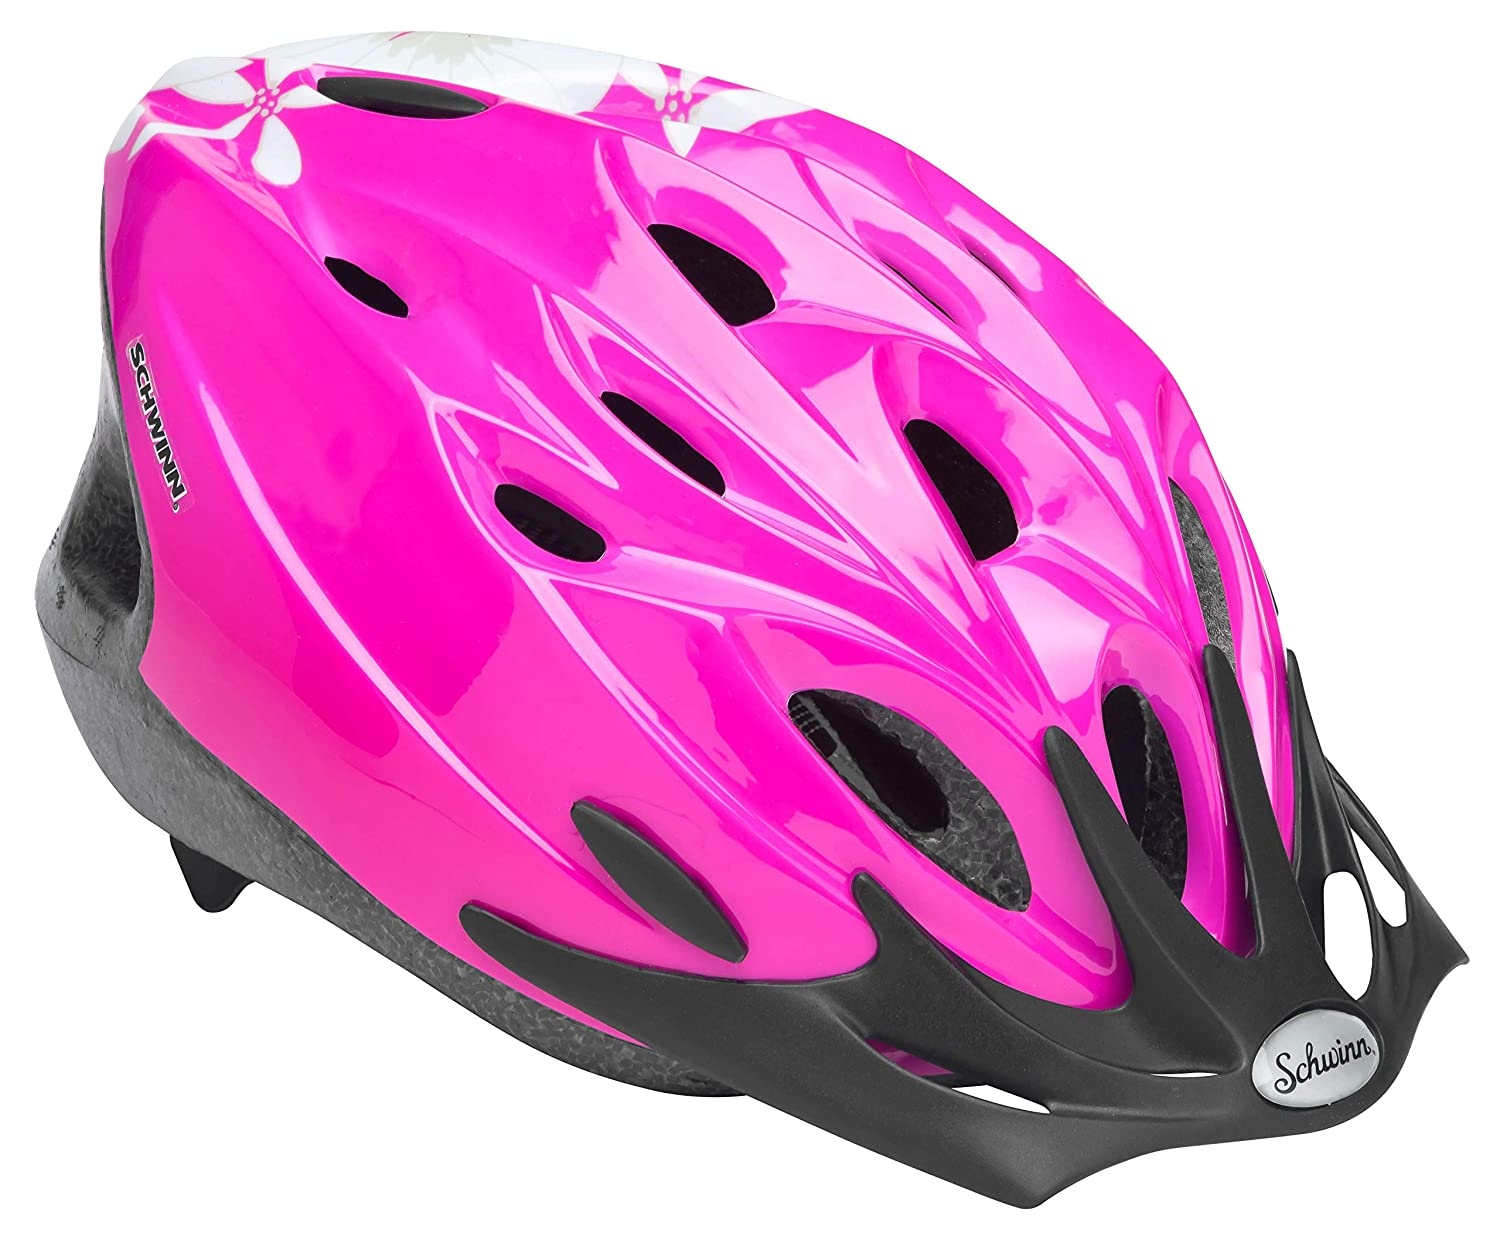 Schwinn Girls Codex Helmet